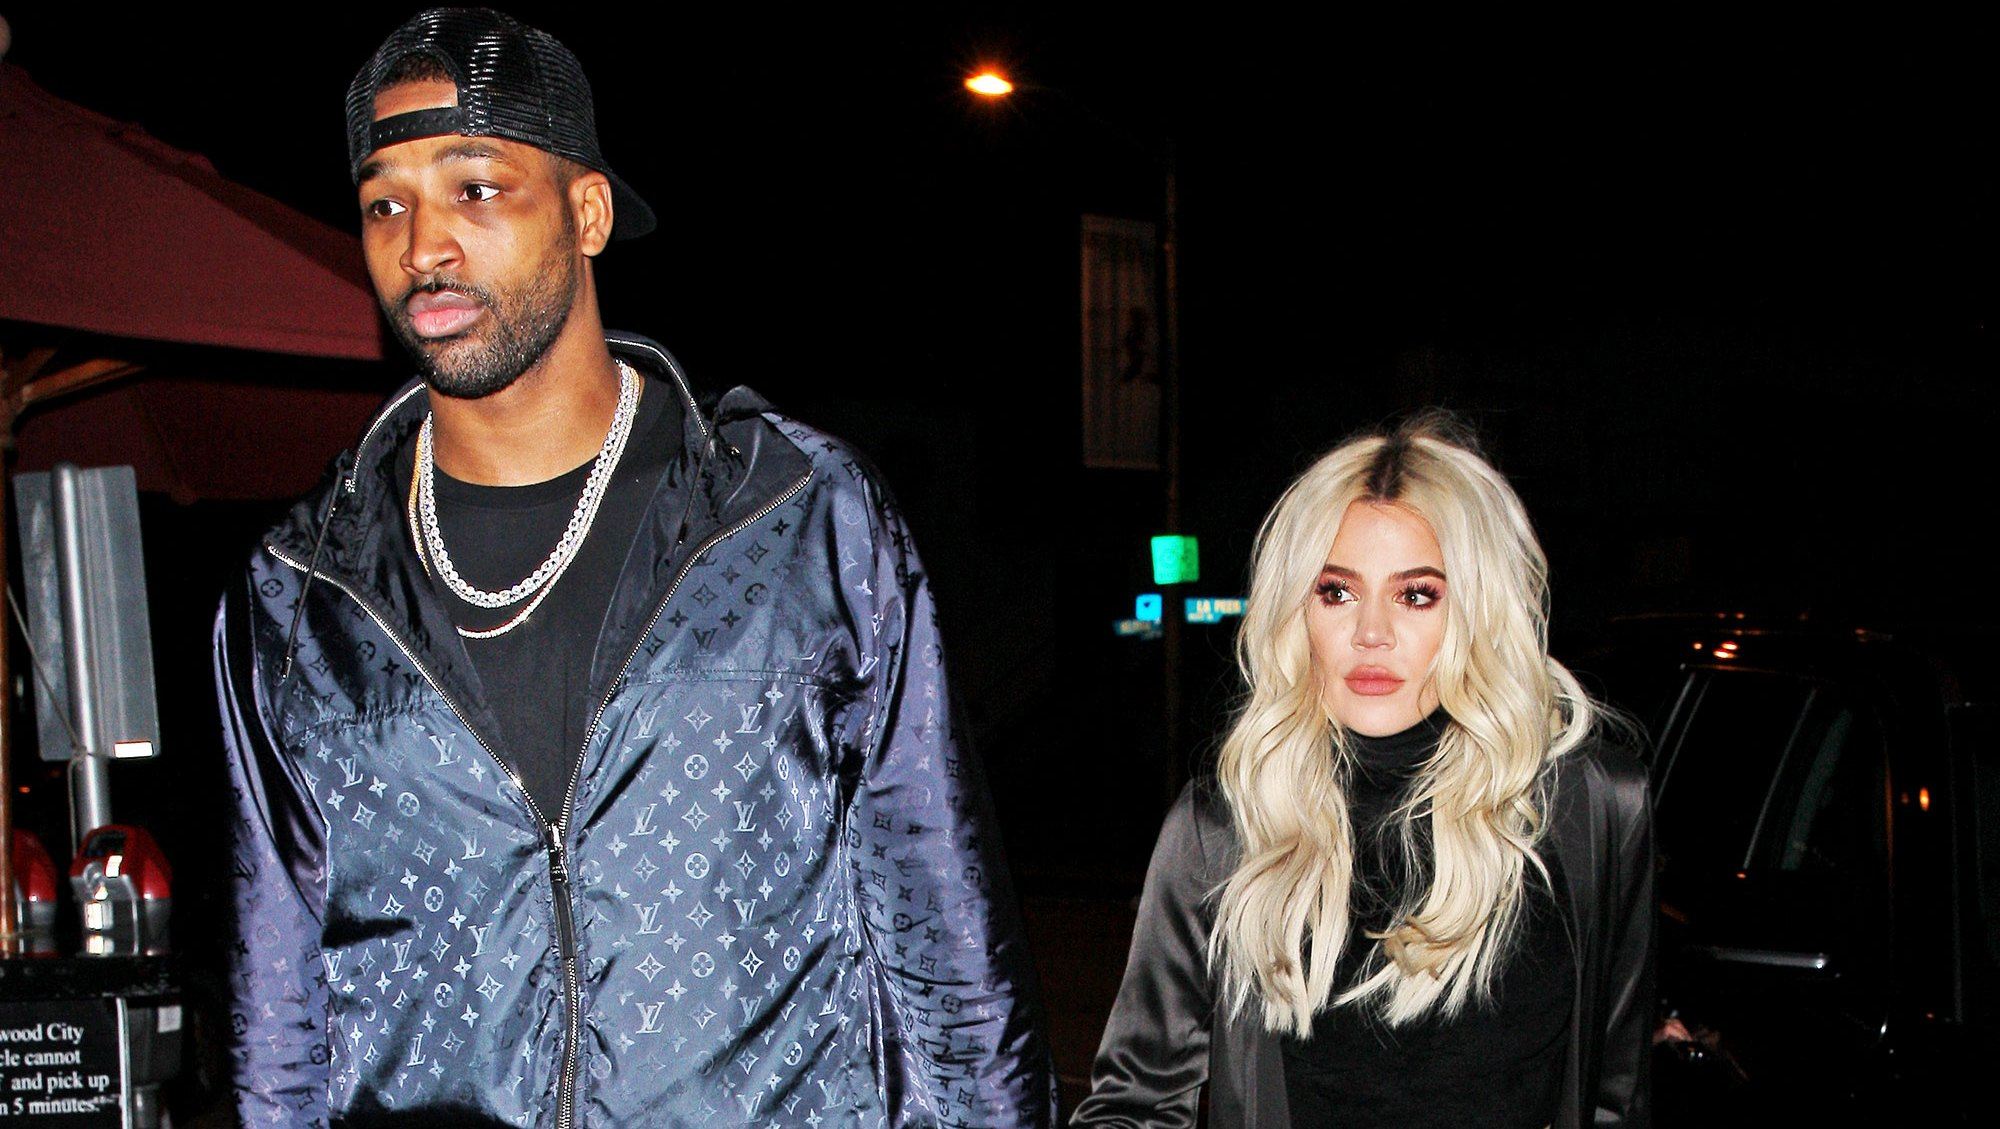 Khloe Kardashian and Tristan Thompson 'Are Not Going to Get Engaged Anytime Soon'